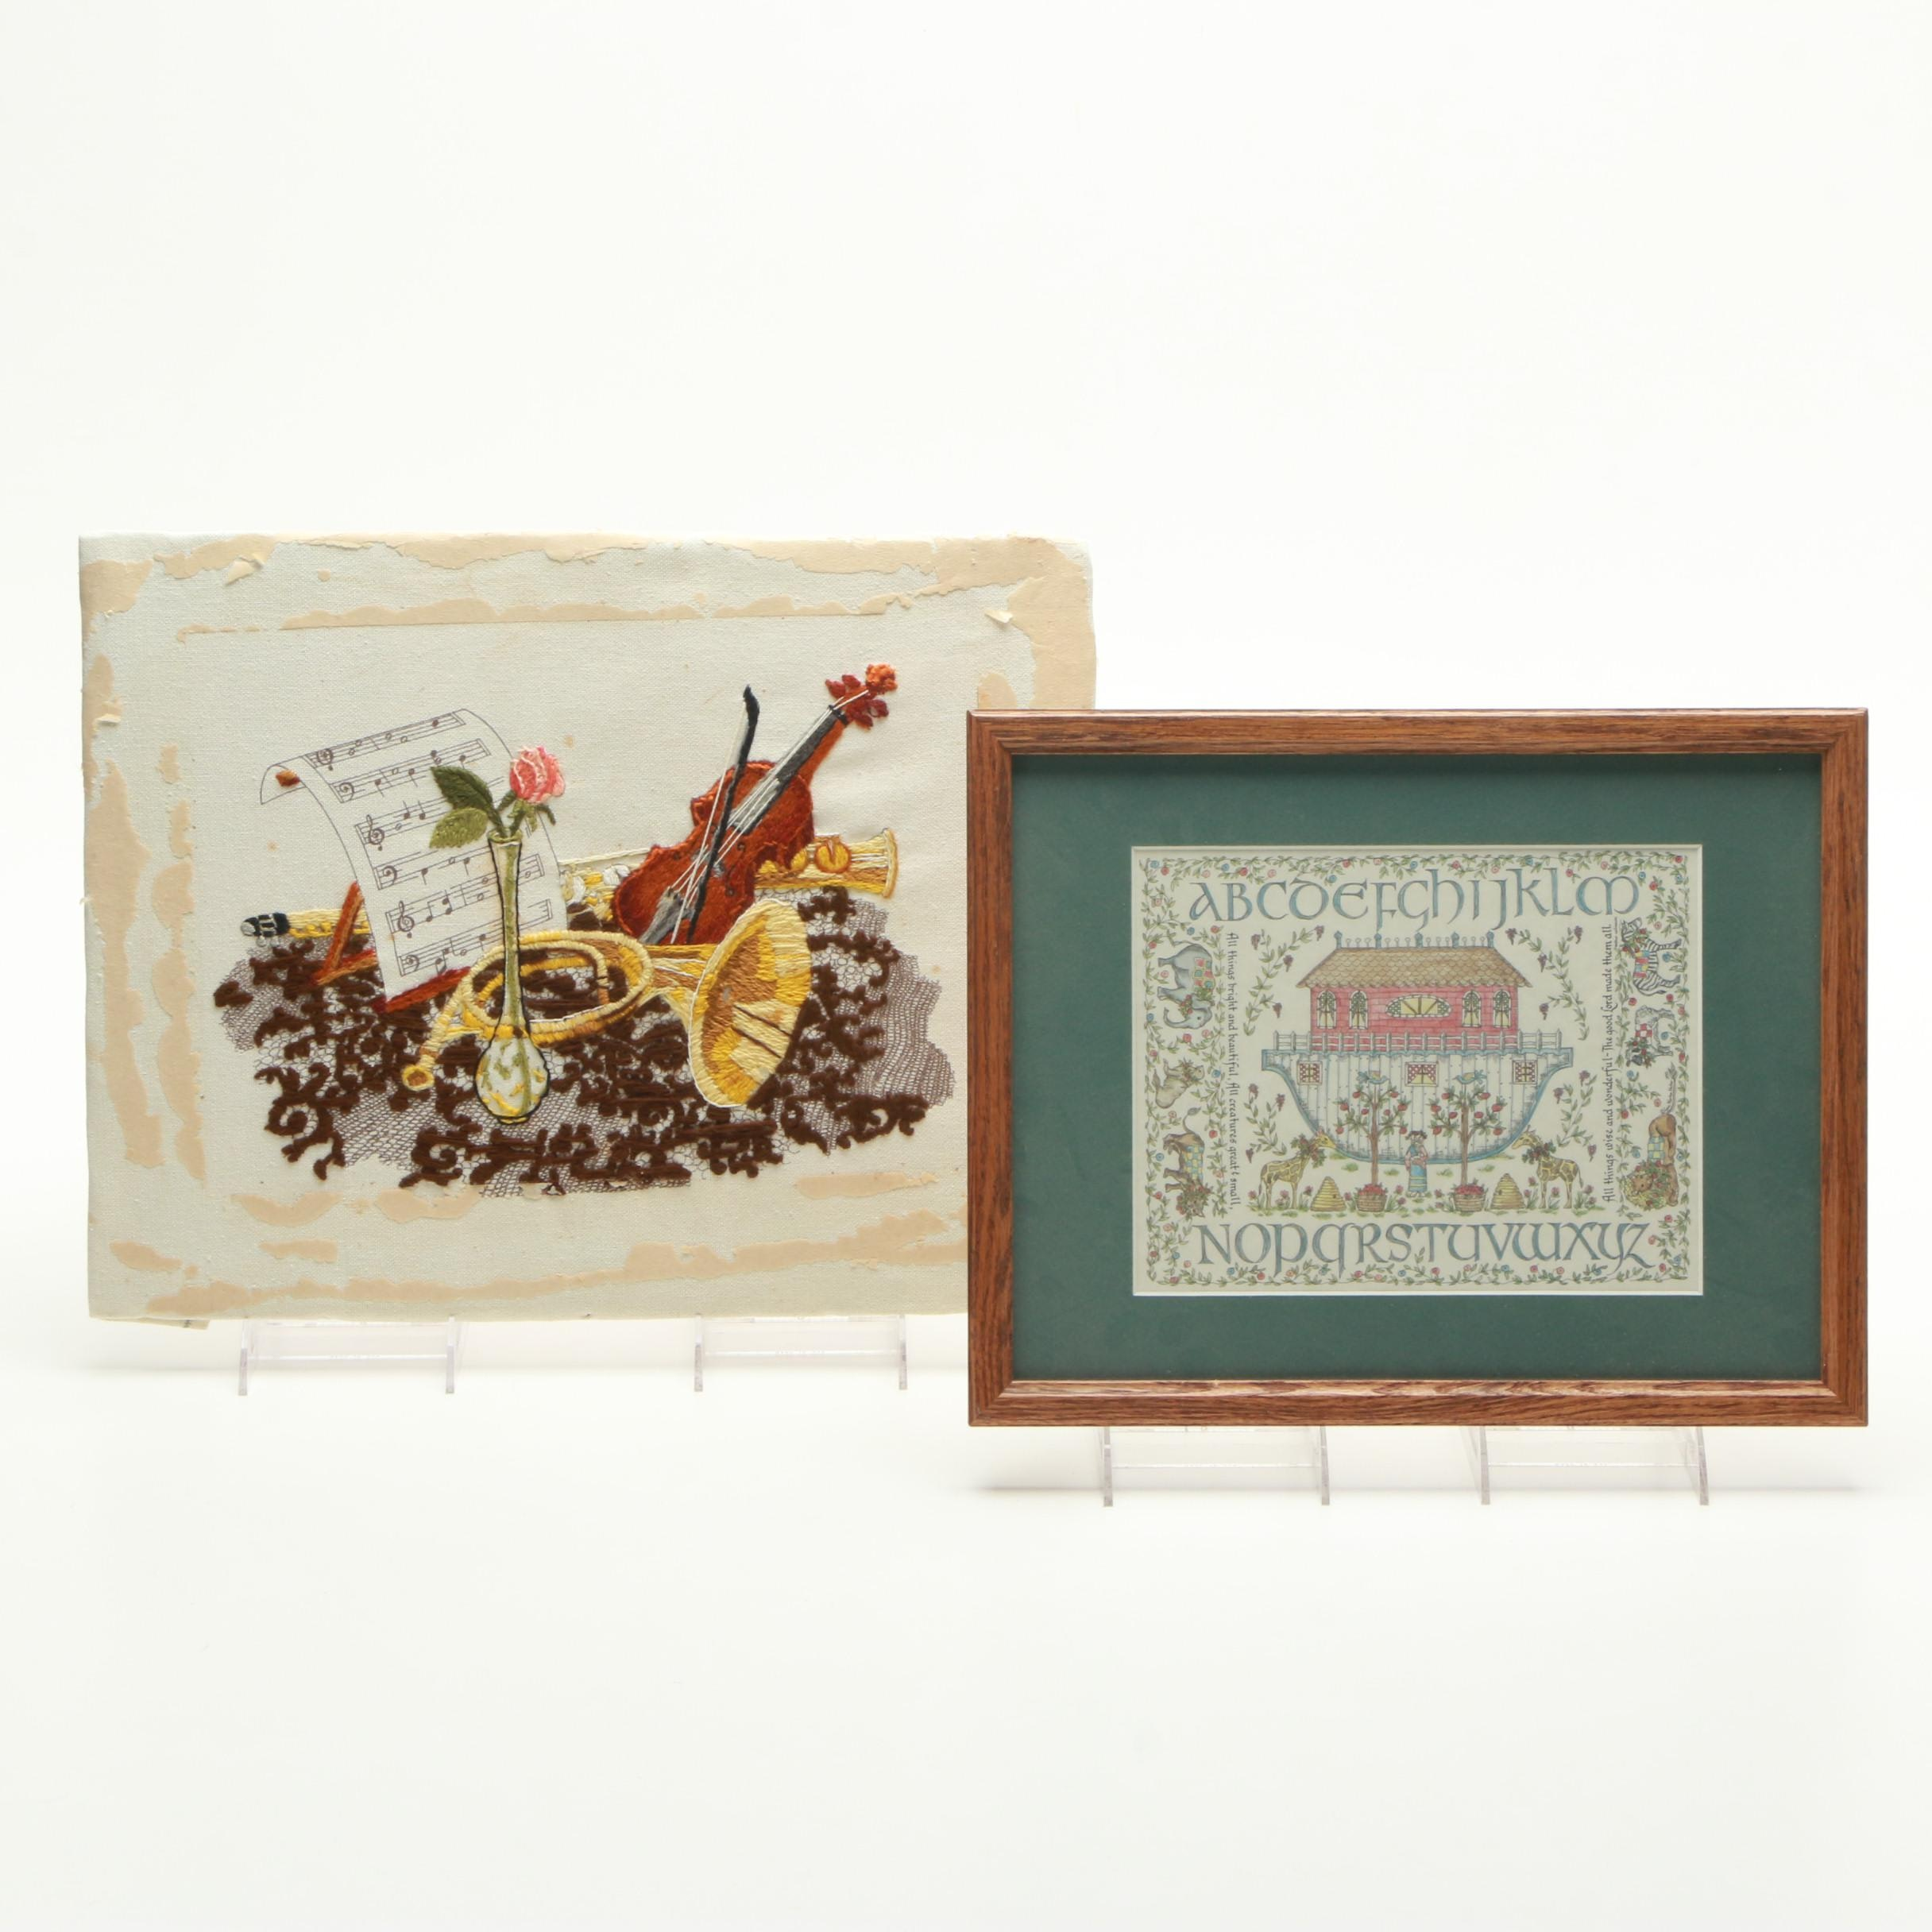 Embroidery of Instruments and Reproduction Print of Noah's Ark